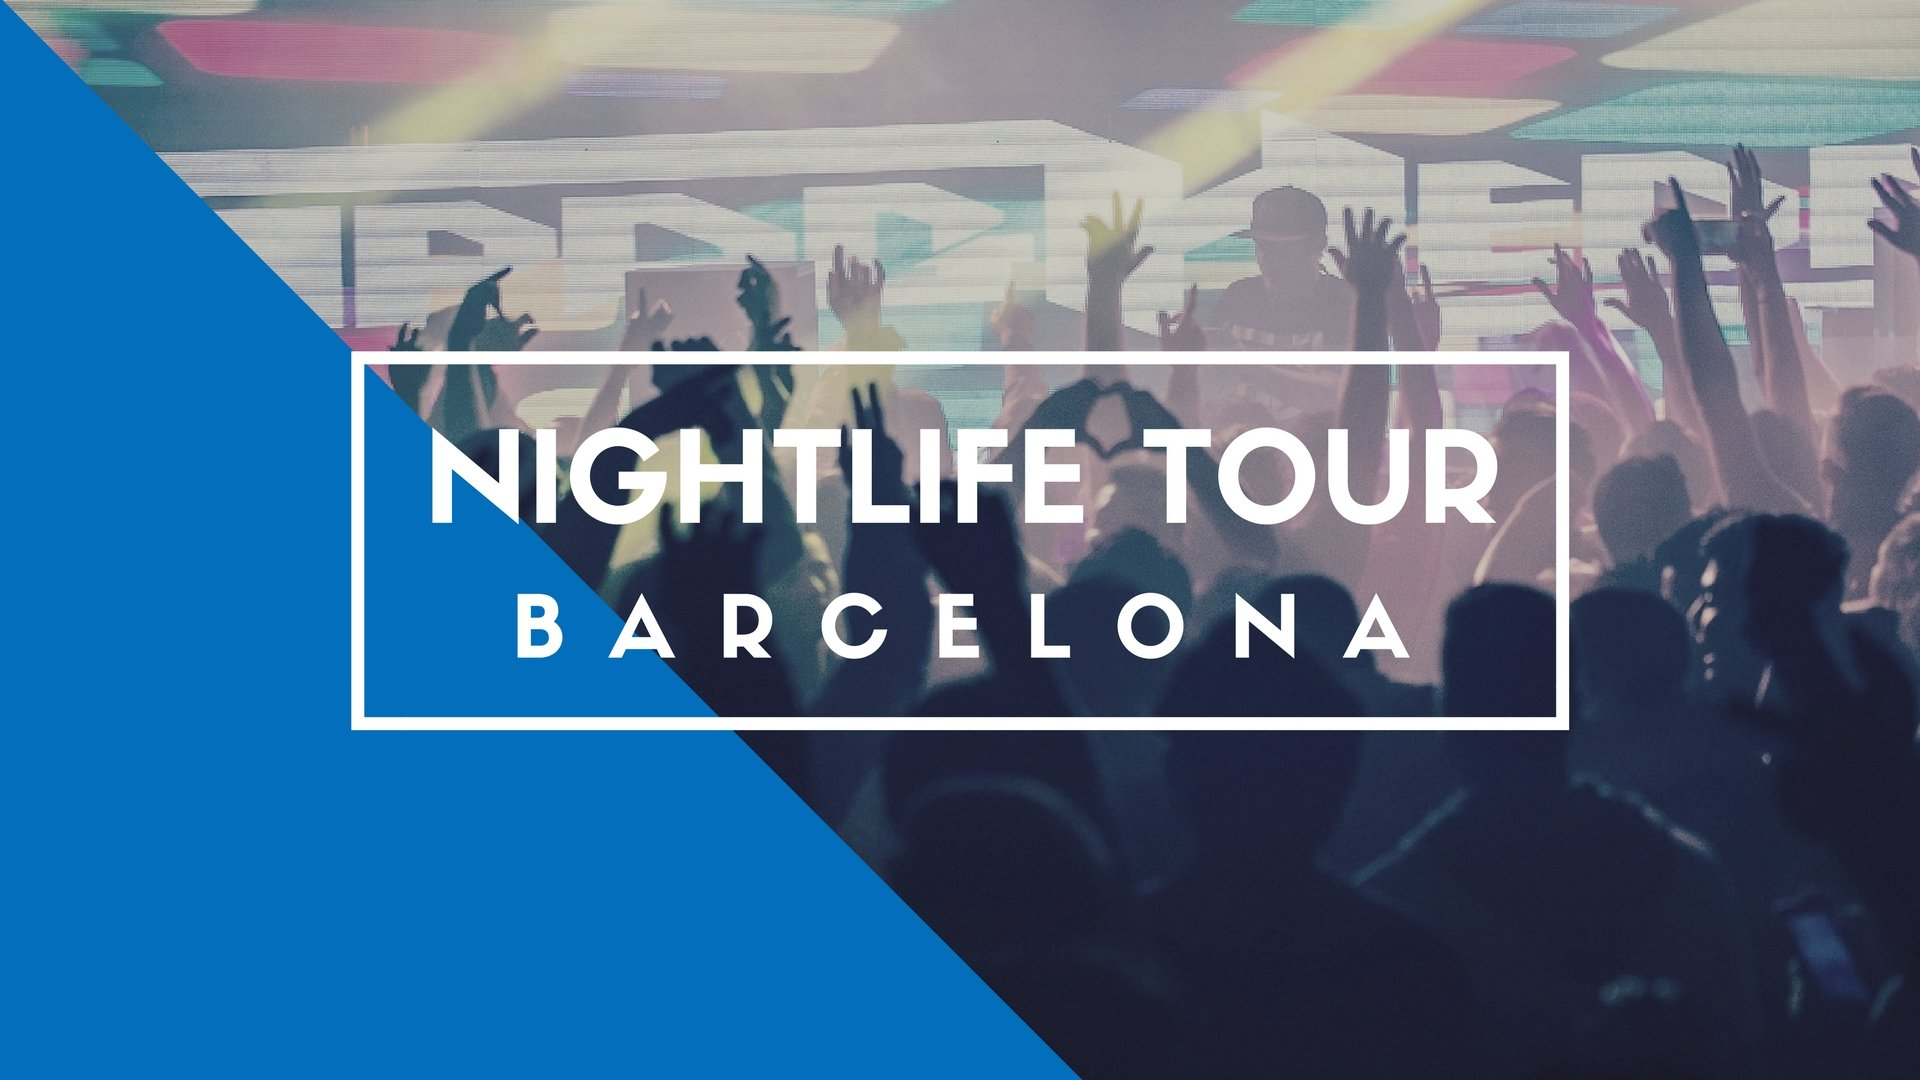 Barcelona Nightlife Tour